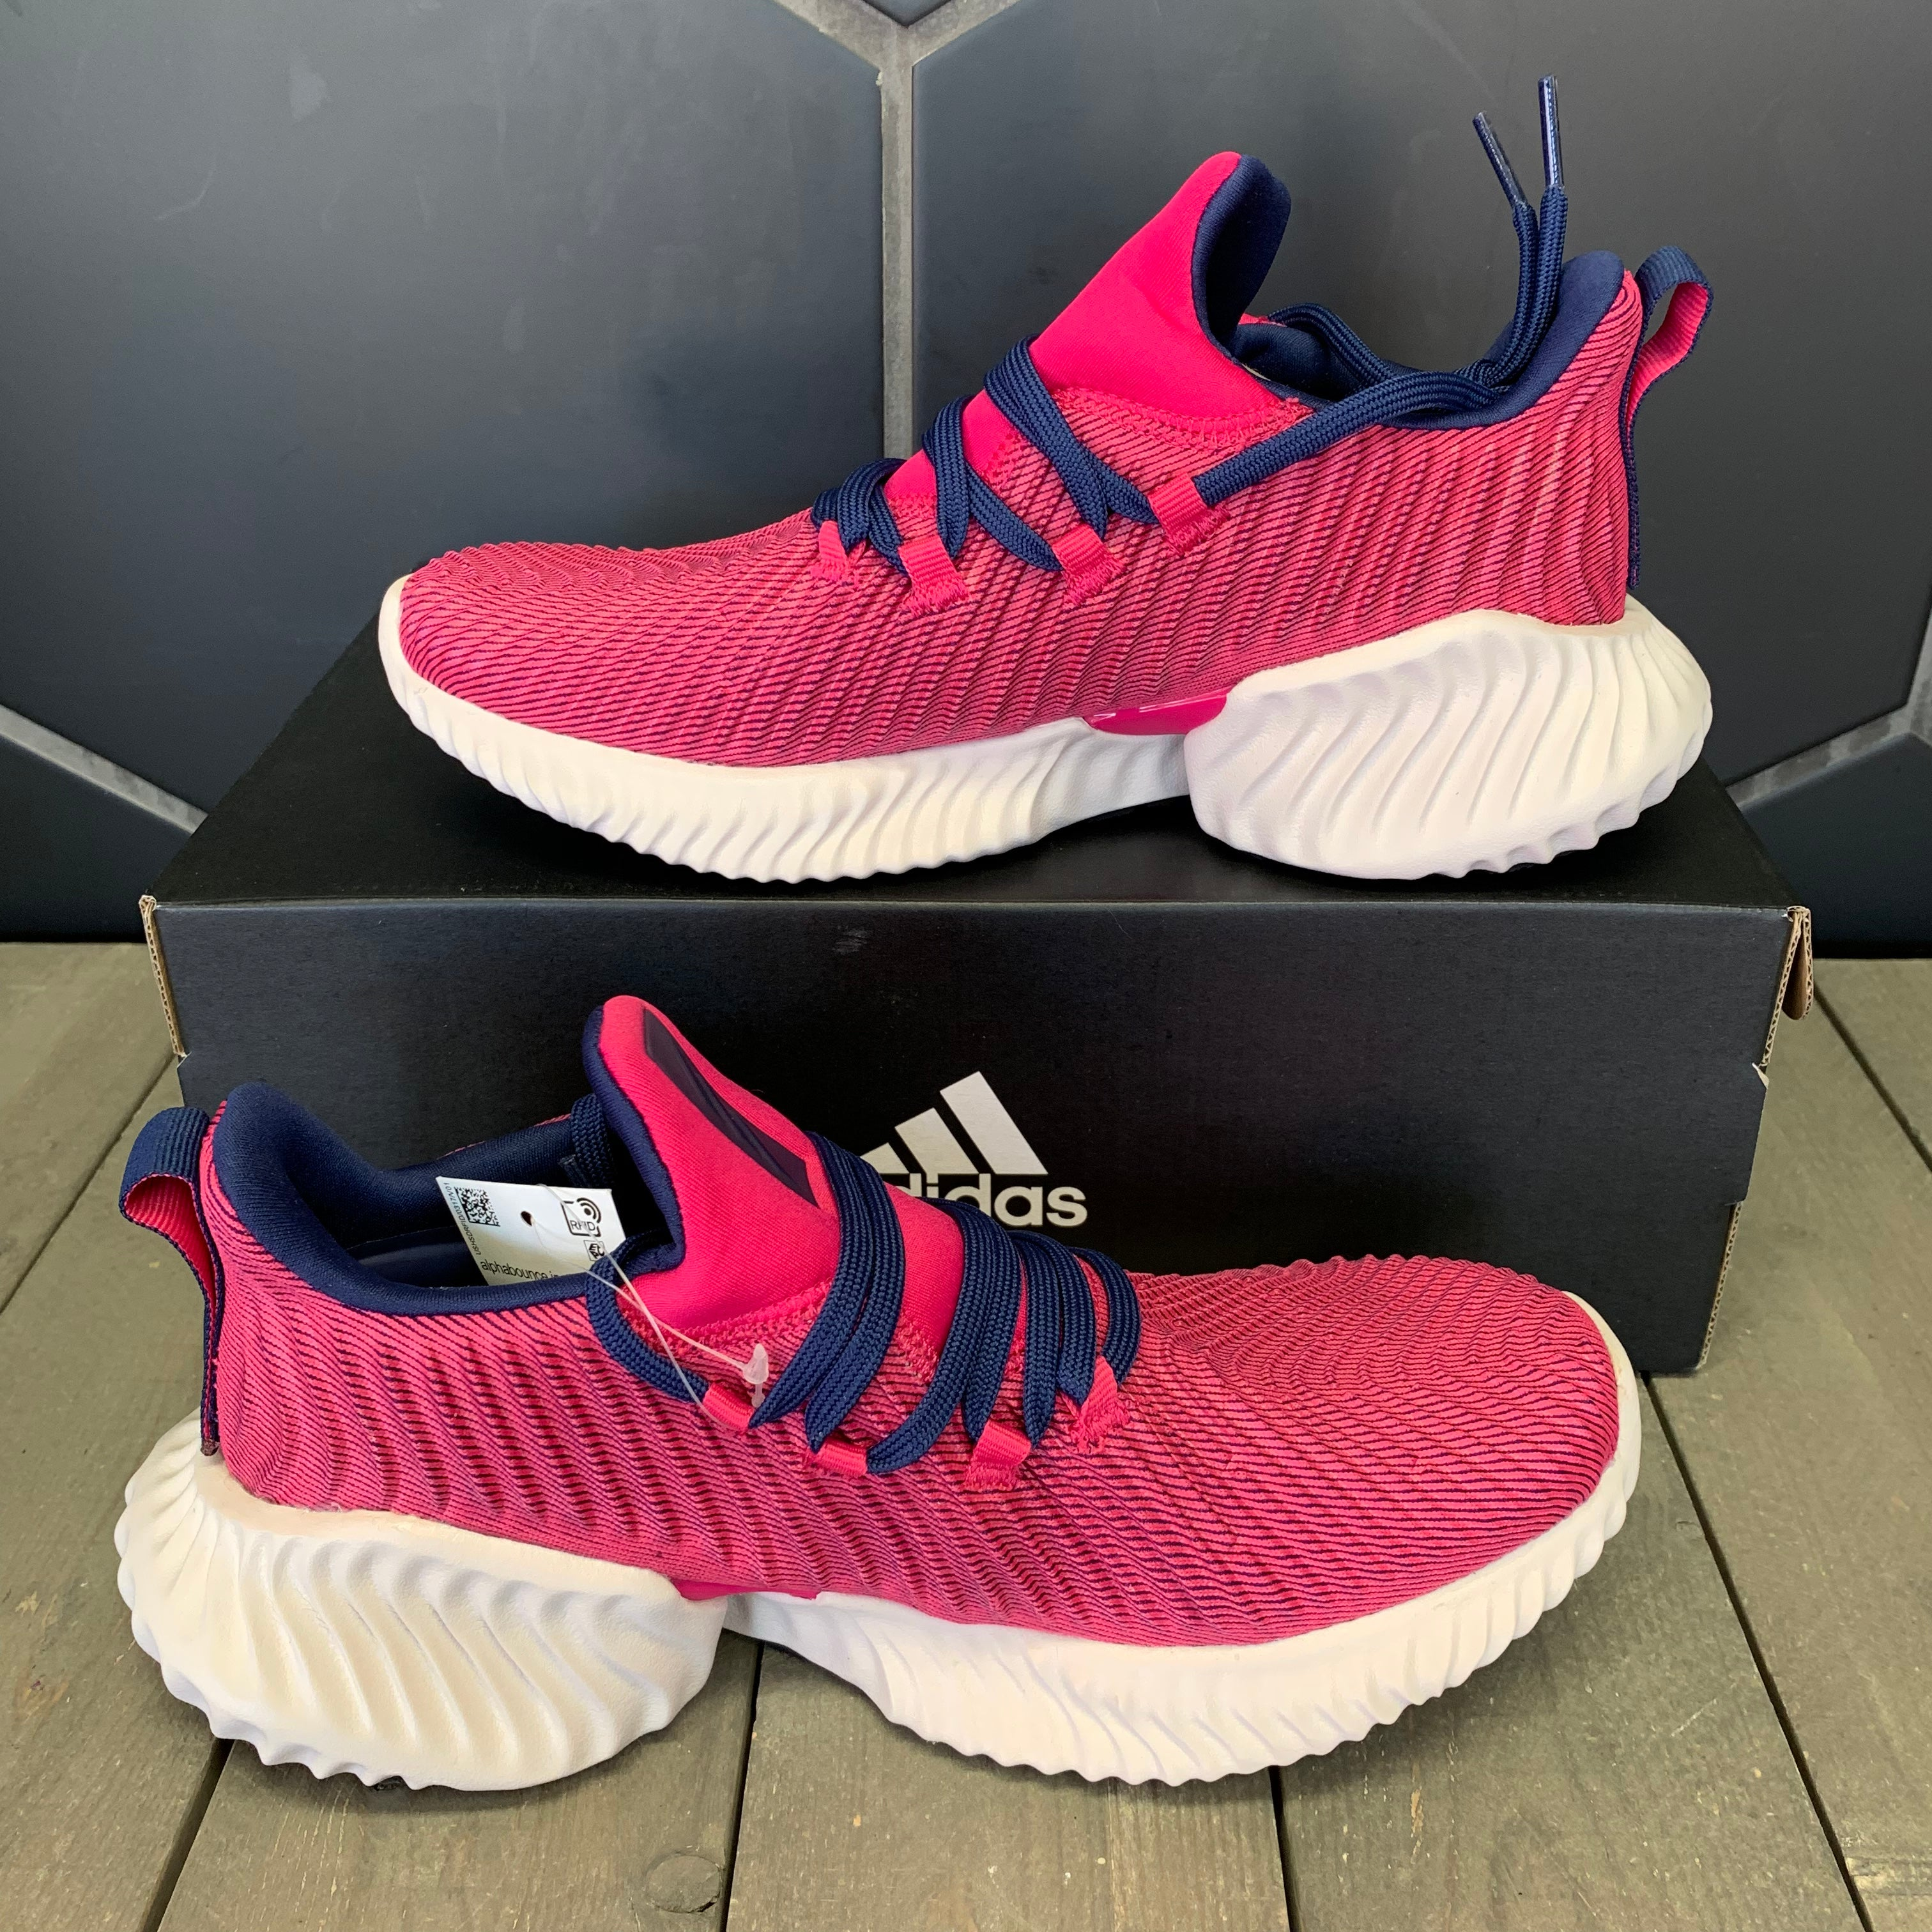 New W/ Box! Adidas Alphabounce Instinct J Pink White Shoes Size 4.5